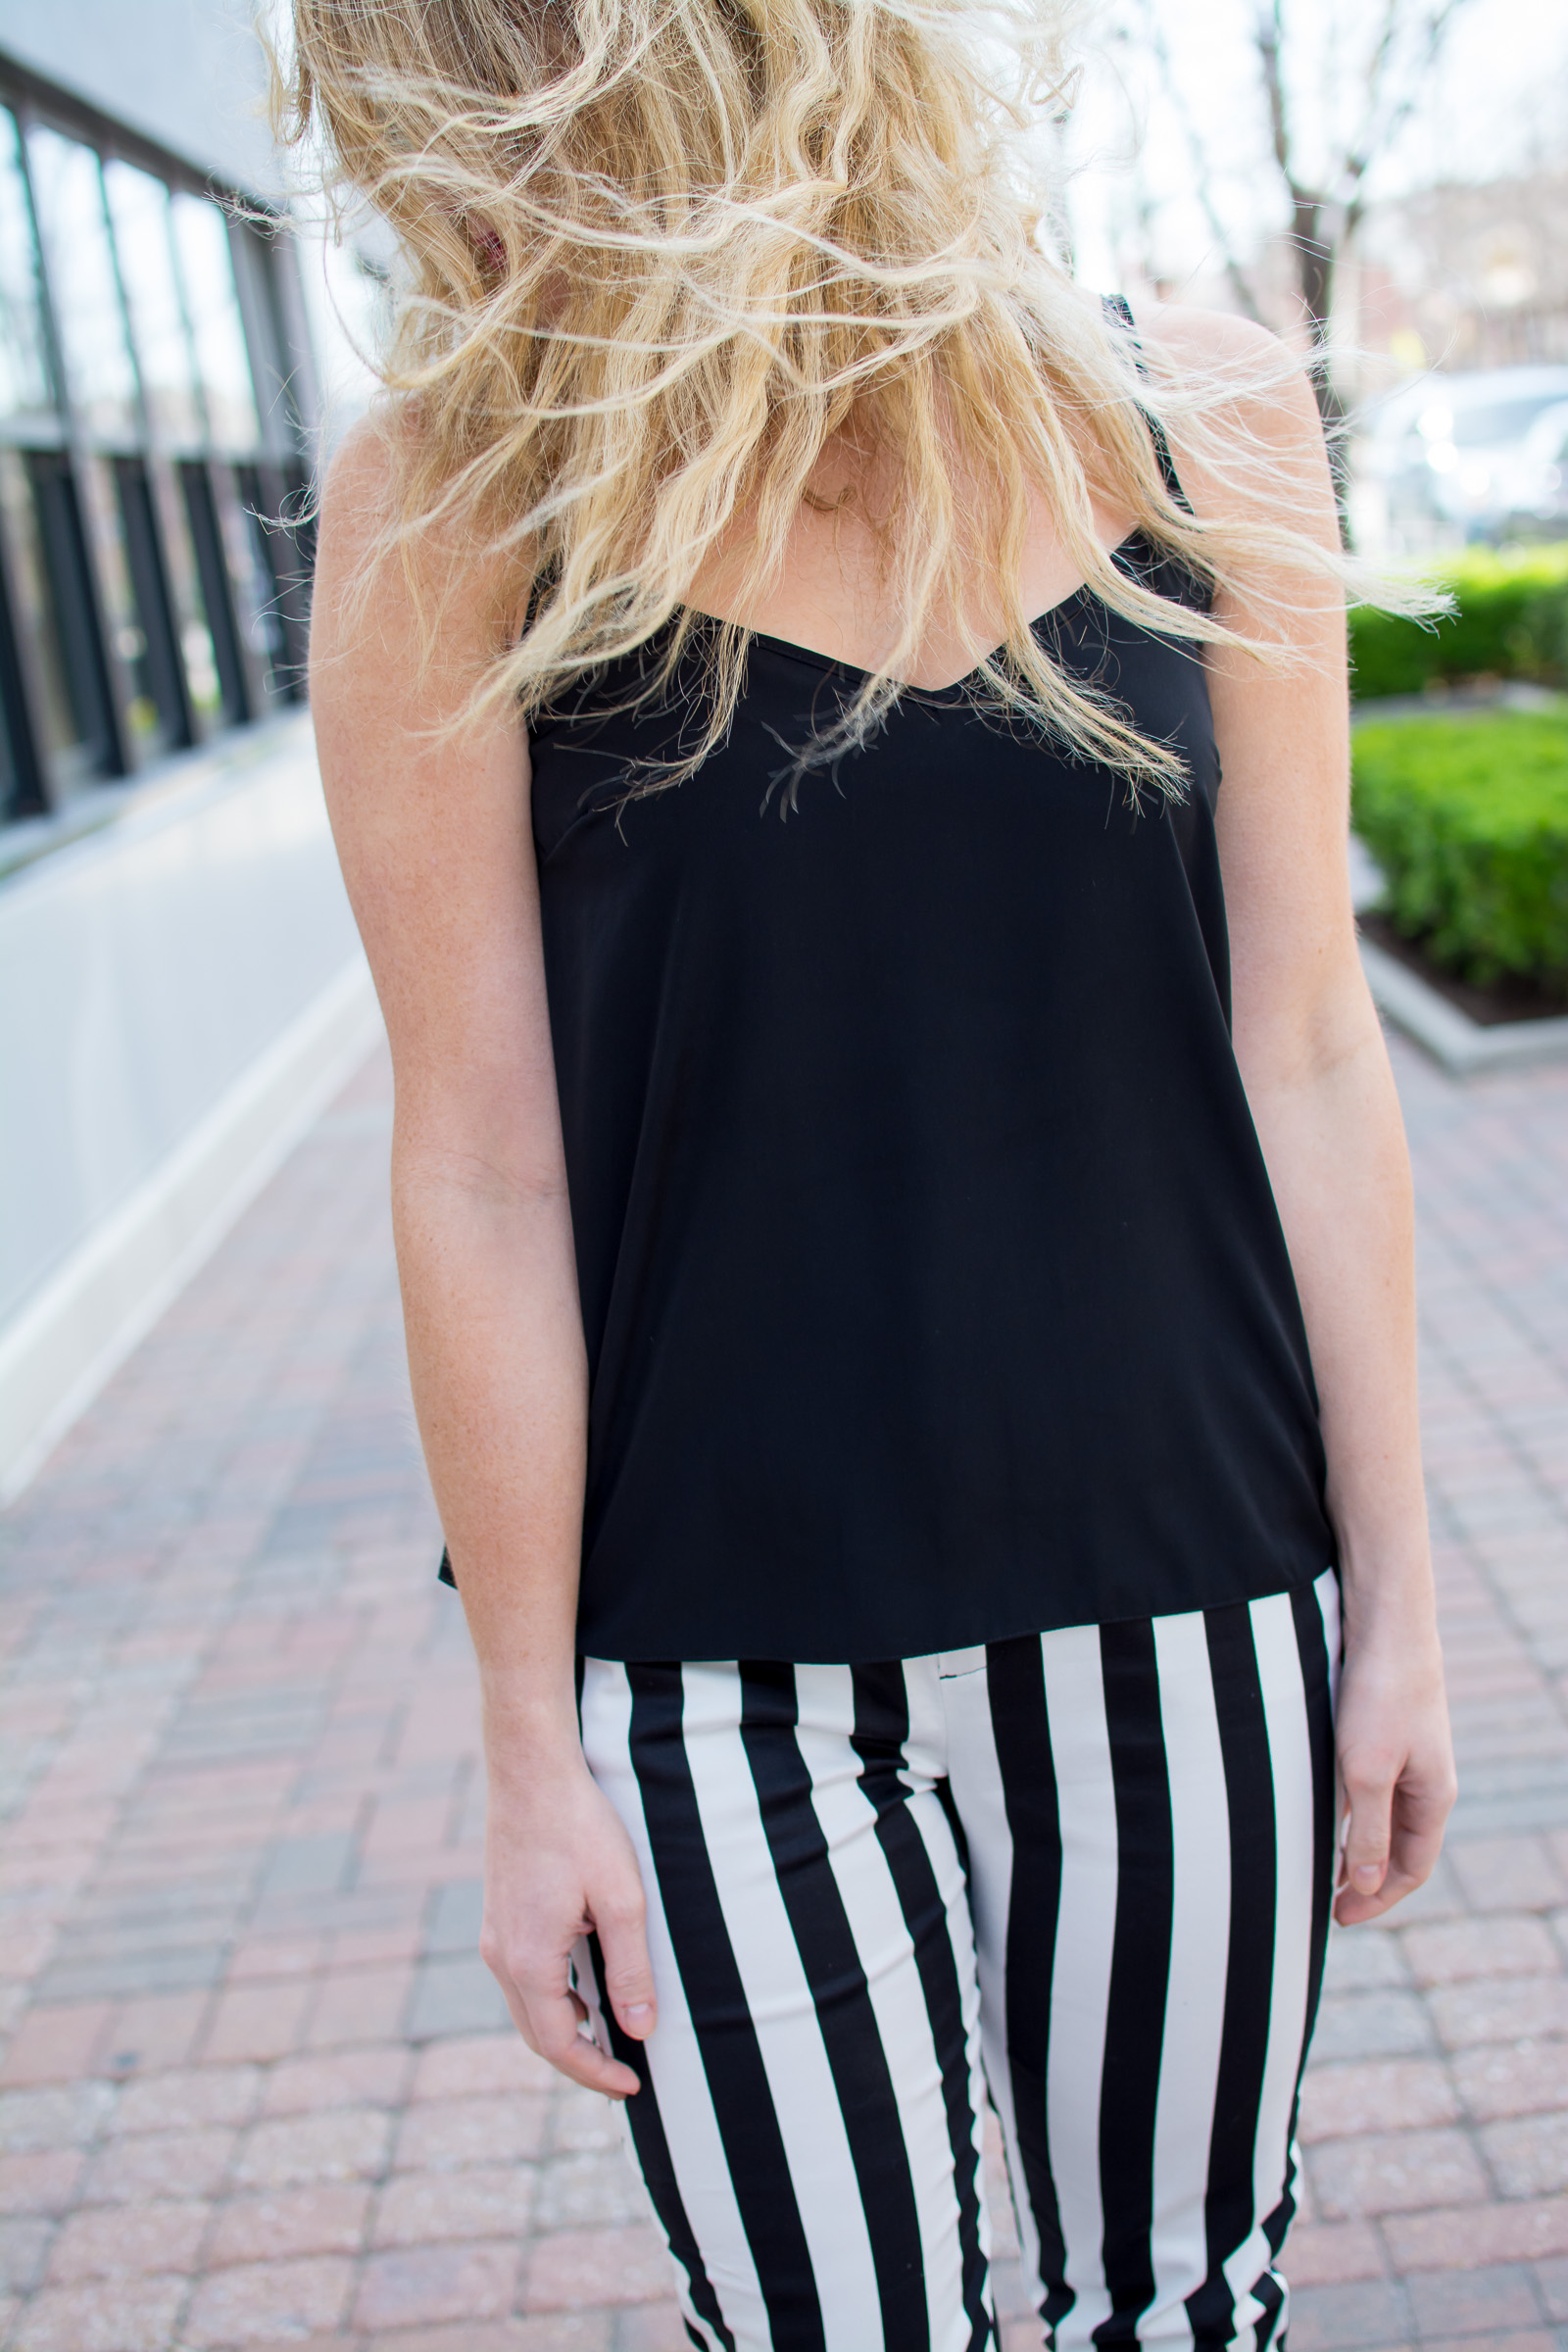 Beetlejuice Striped Pants. | Ashley from Le Stylo Rouge